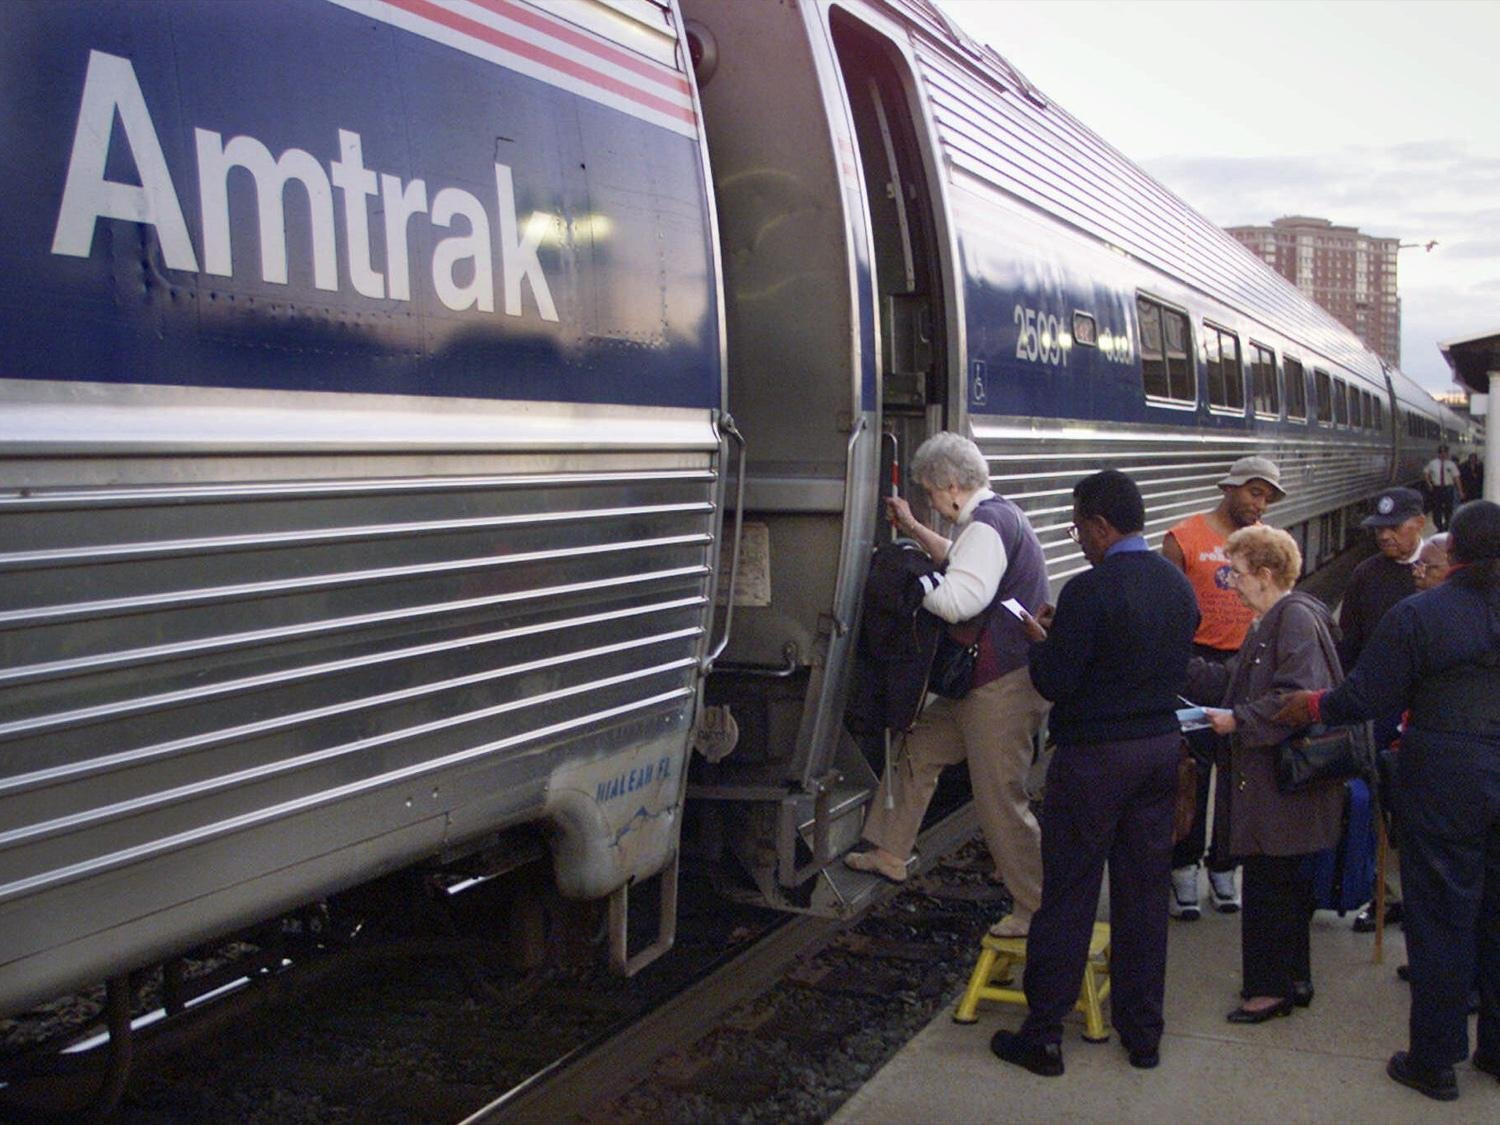 Alleged white supremacist accused of terrorism in Amtrak incident